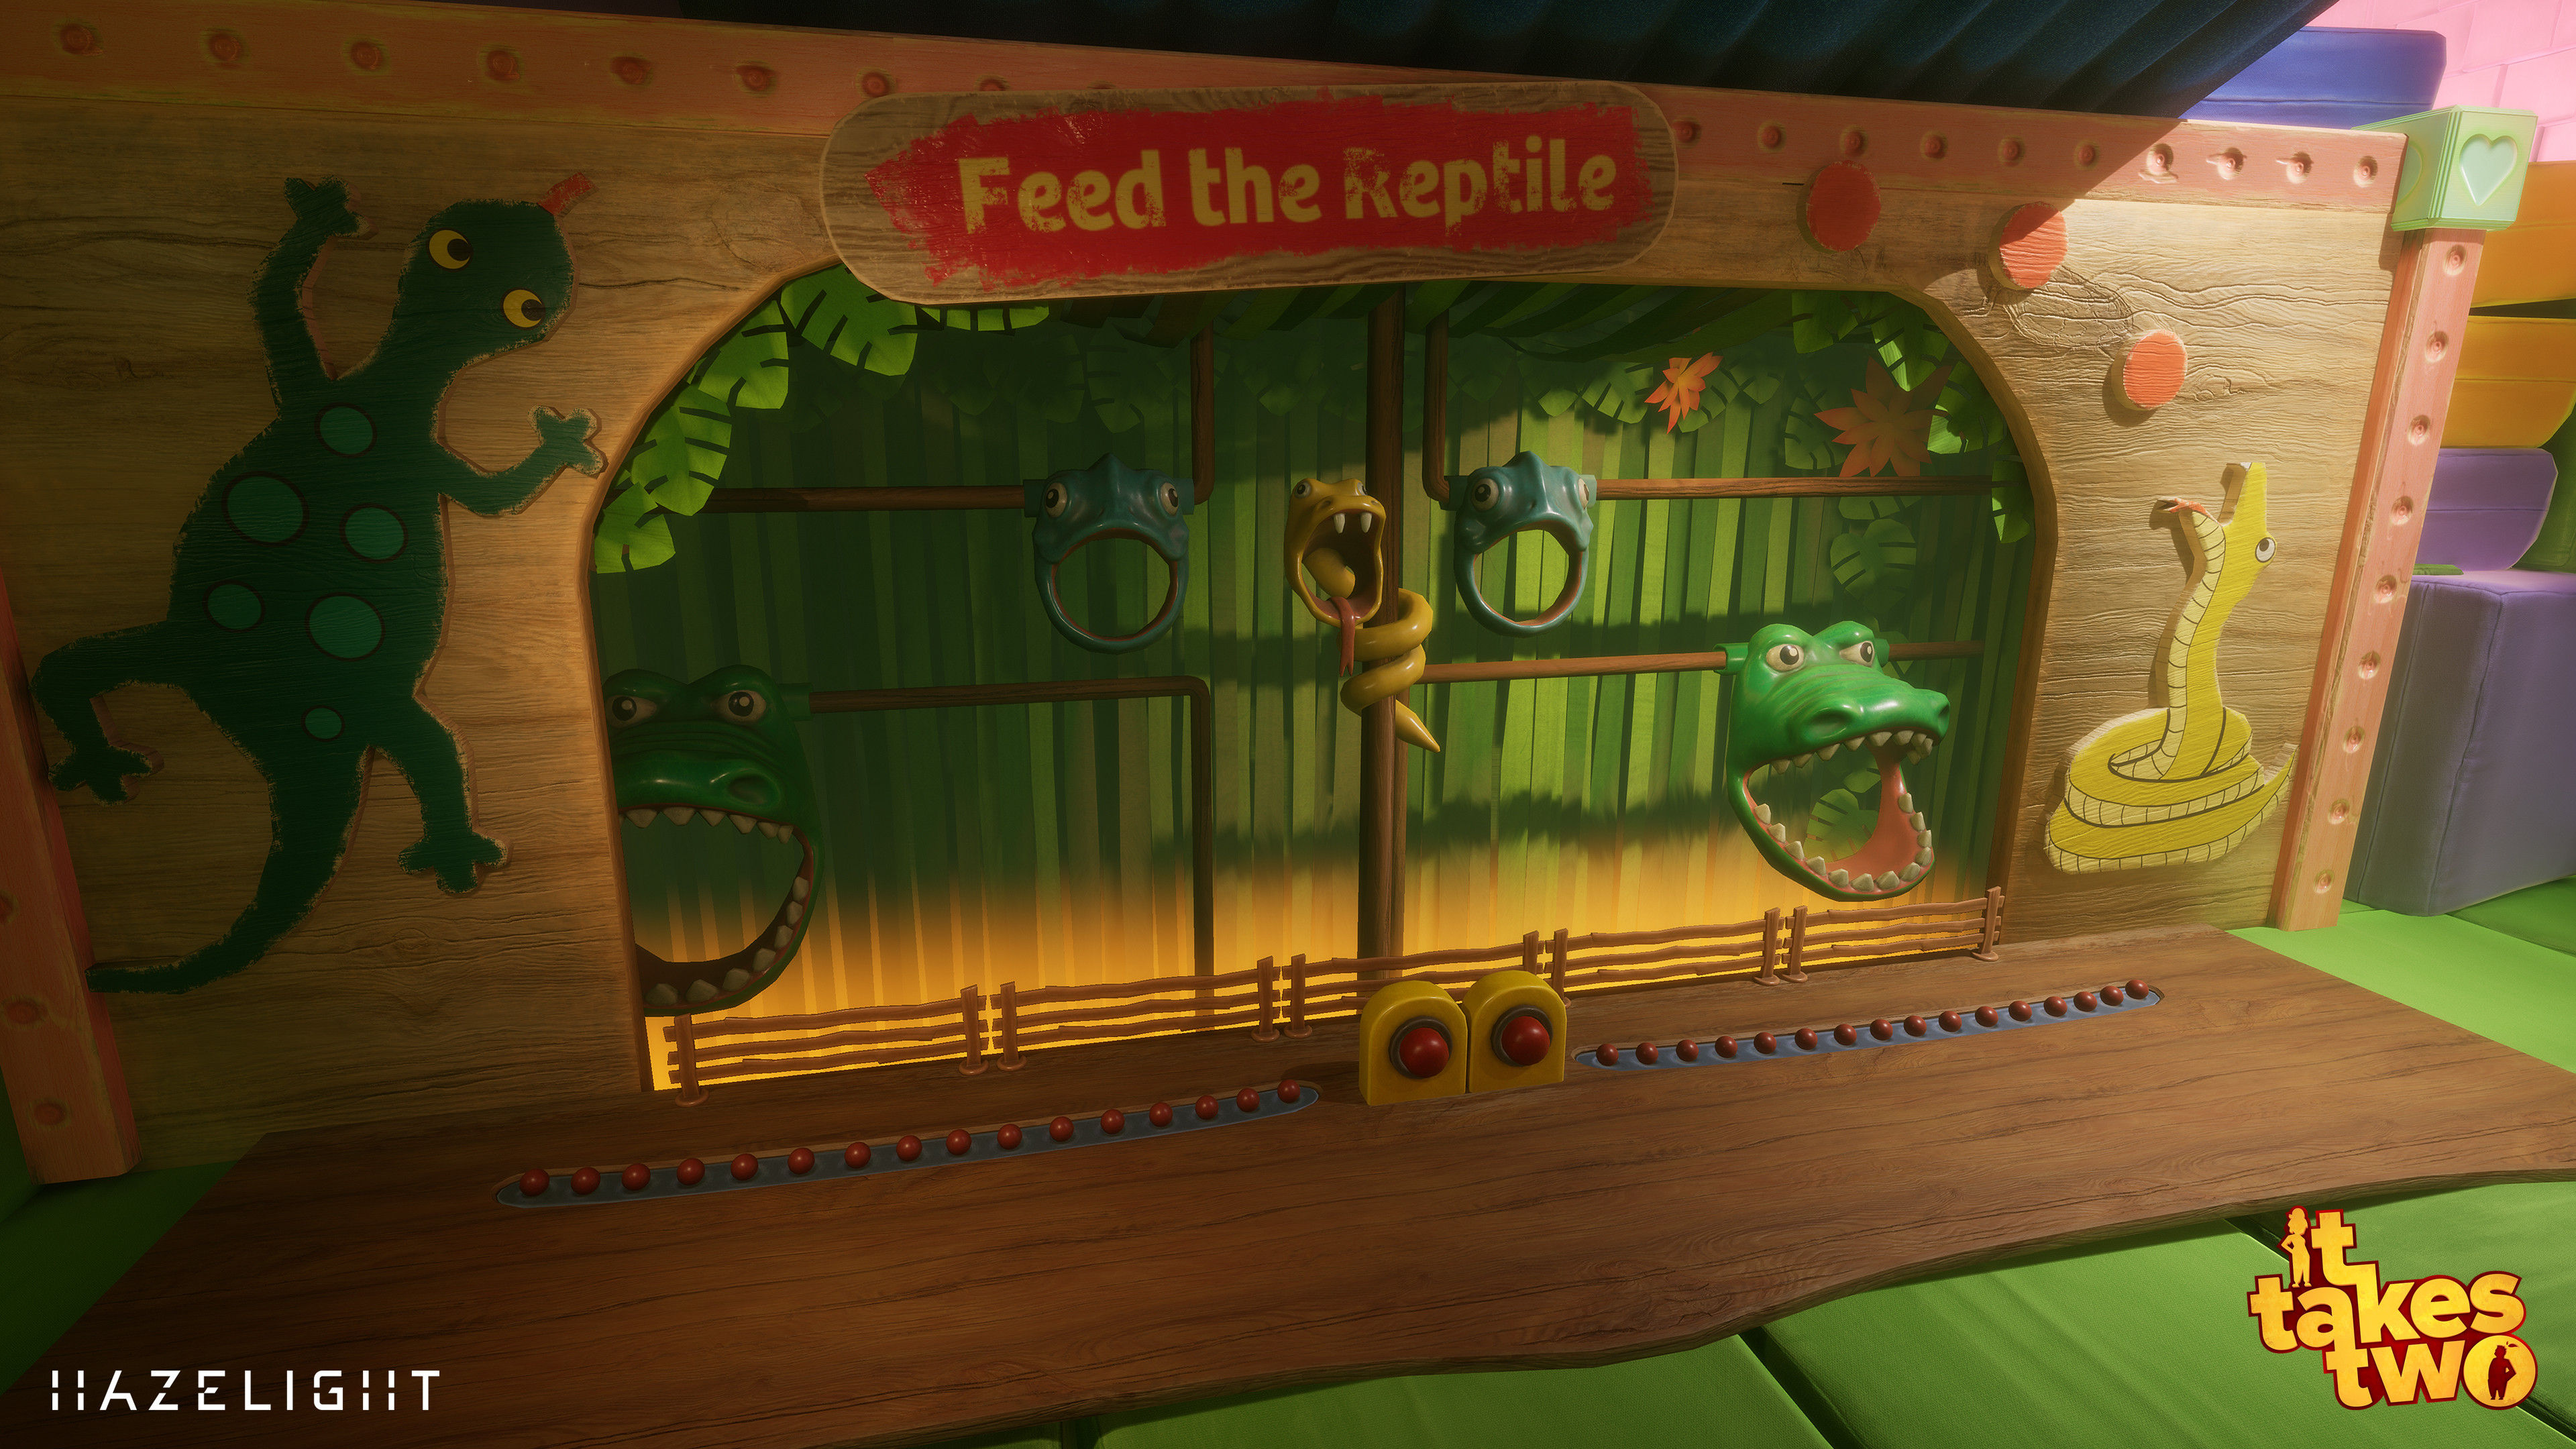 Feed the Reptile mini game in Hopscotch.